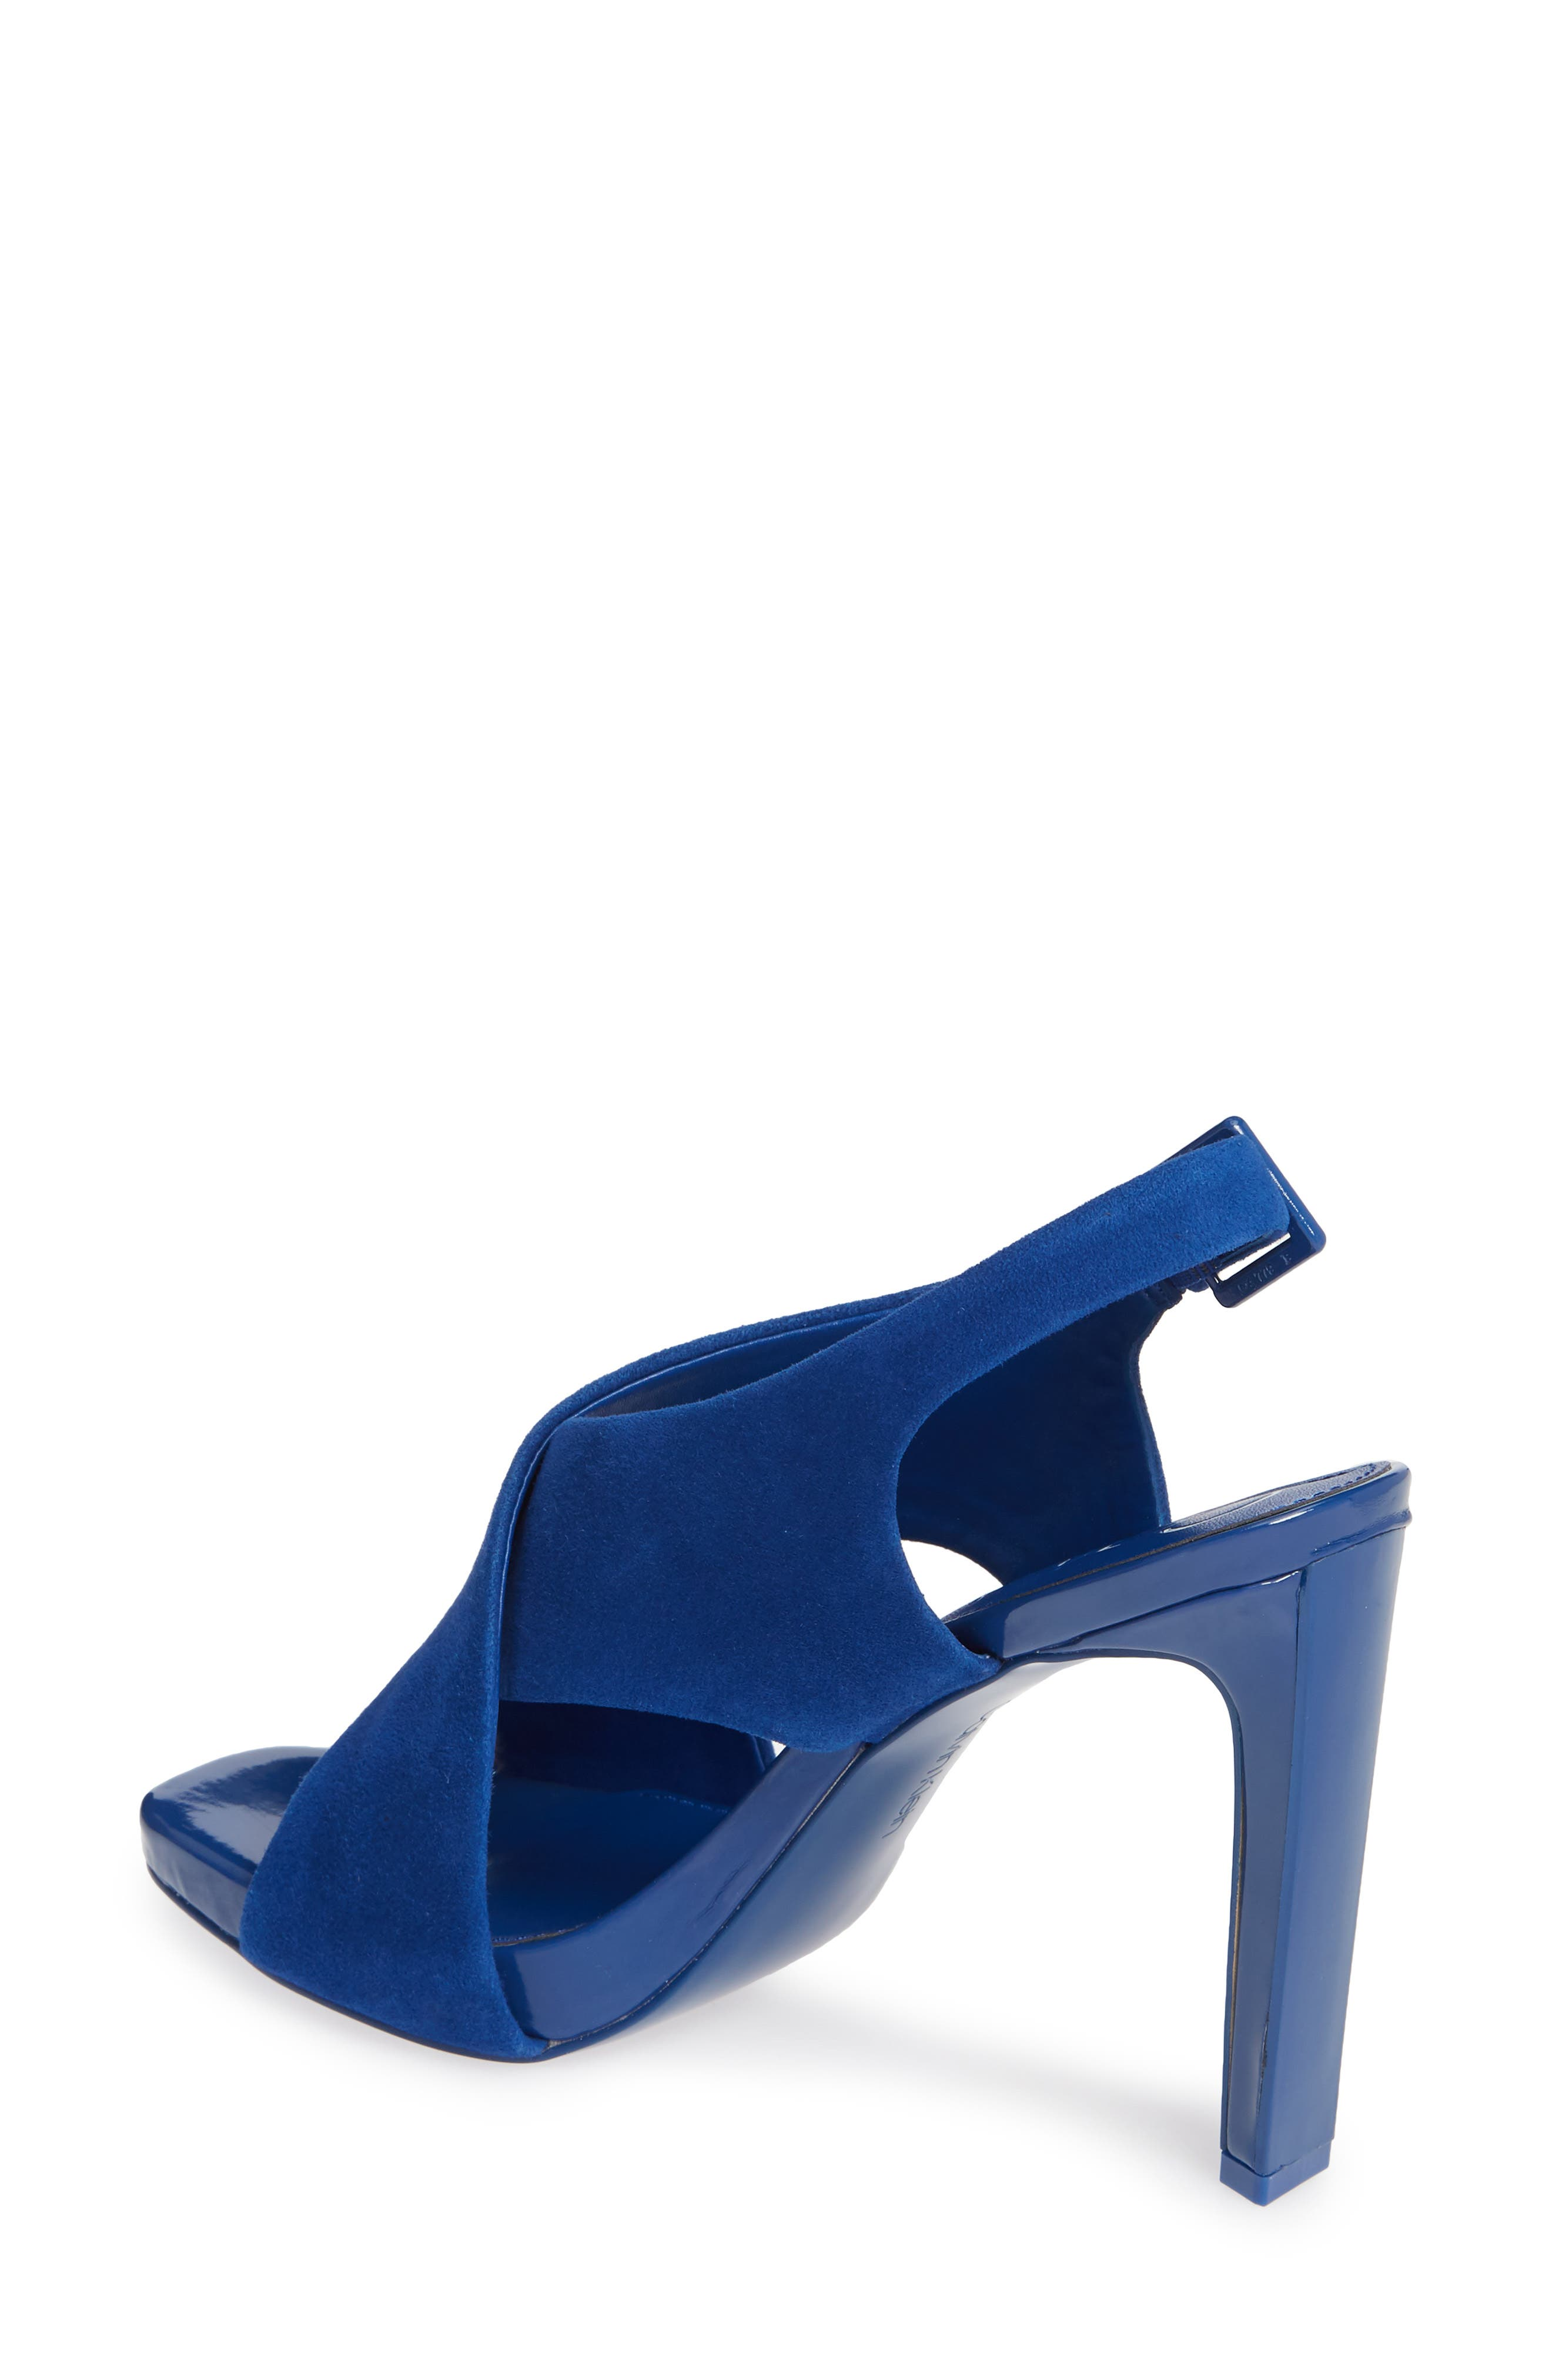 CALVIN KLEIN, Myra Cross Strap Sandal, Alternate thumbnail 2, color, ROYAL BLUE SUEDE